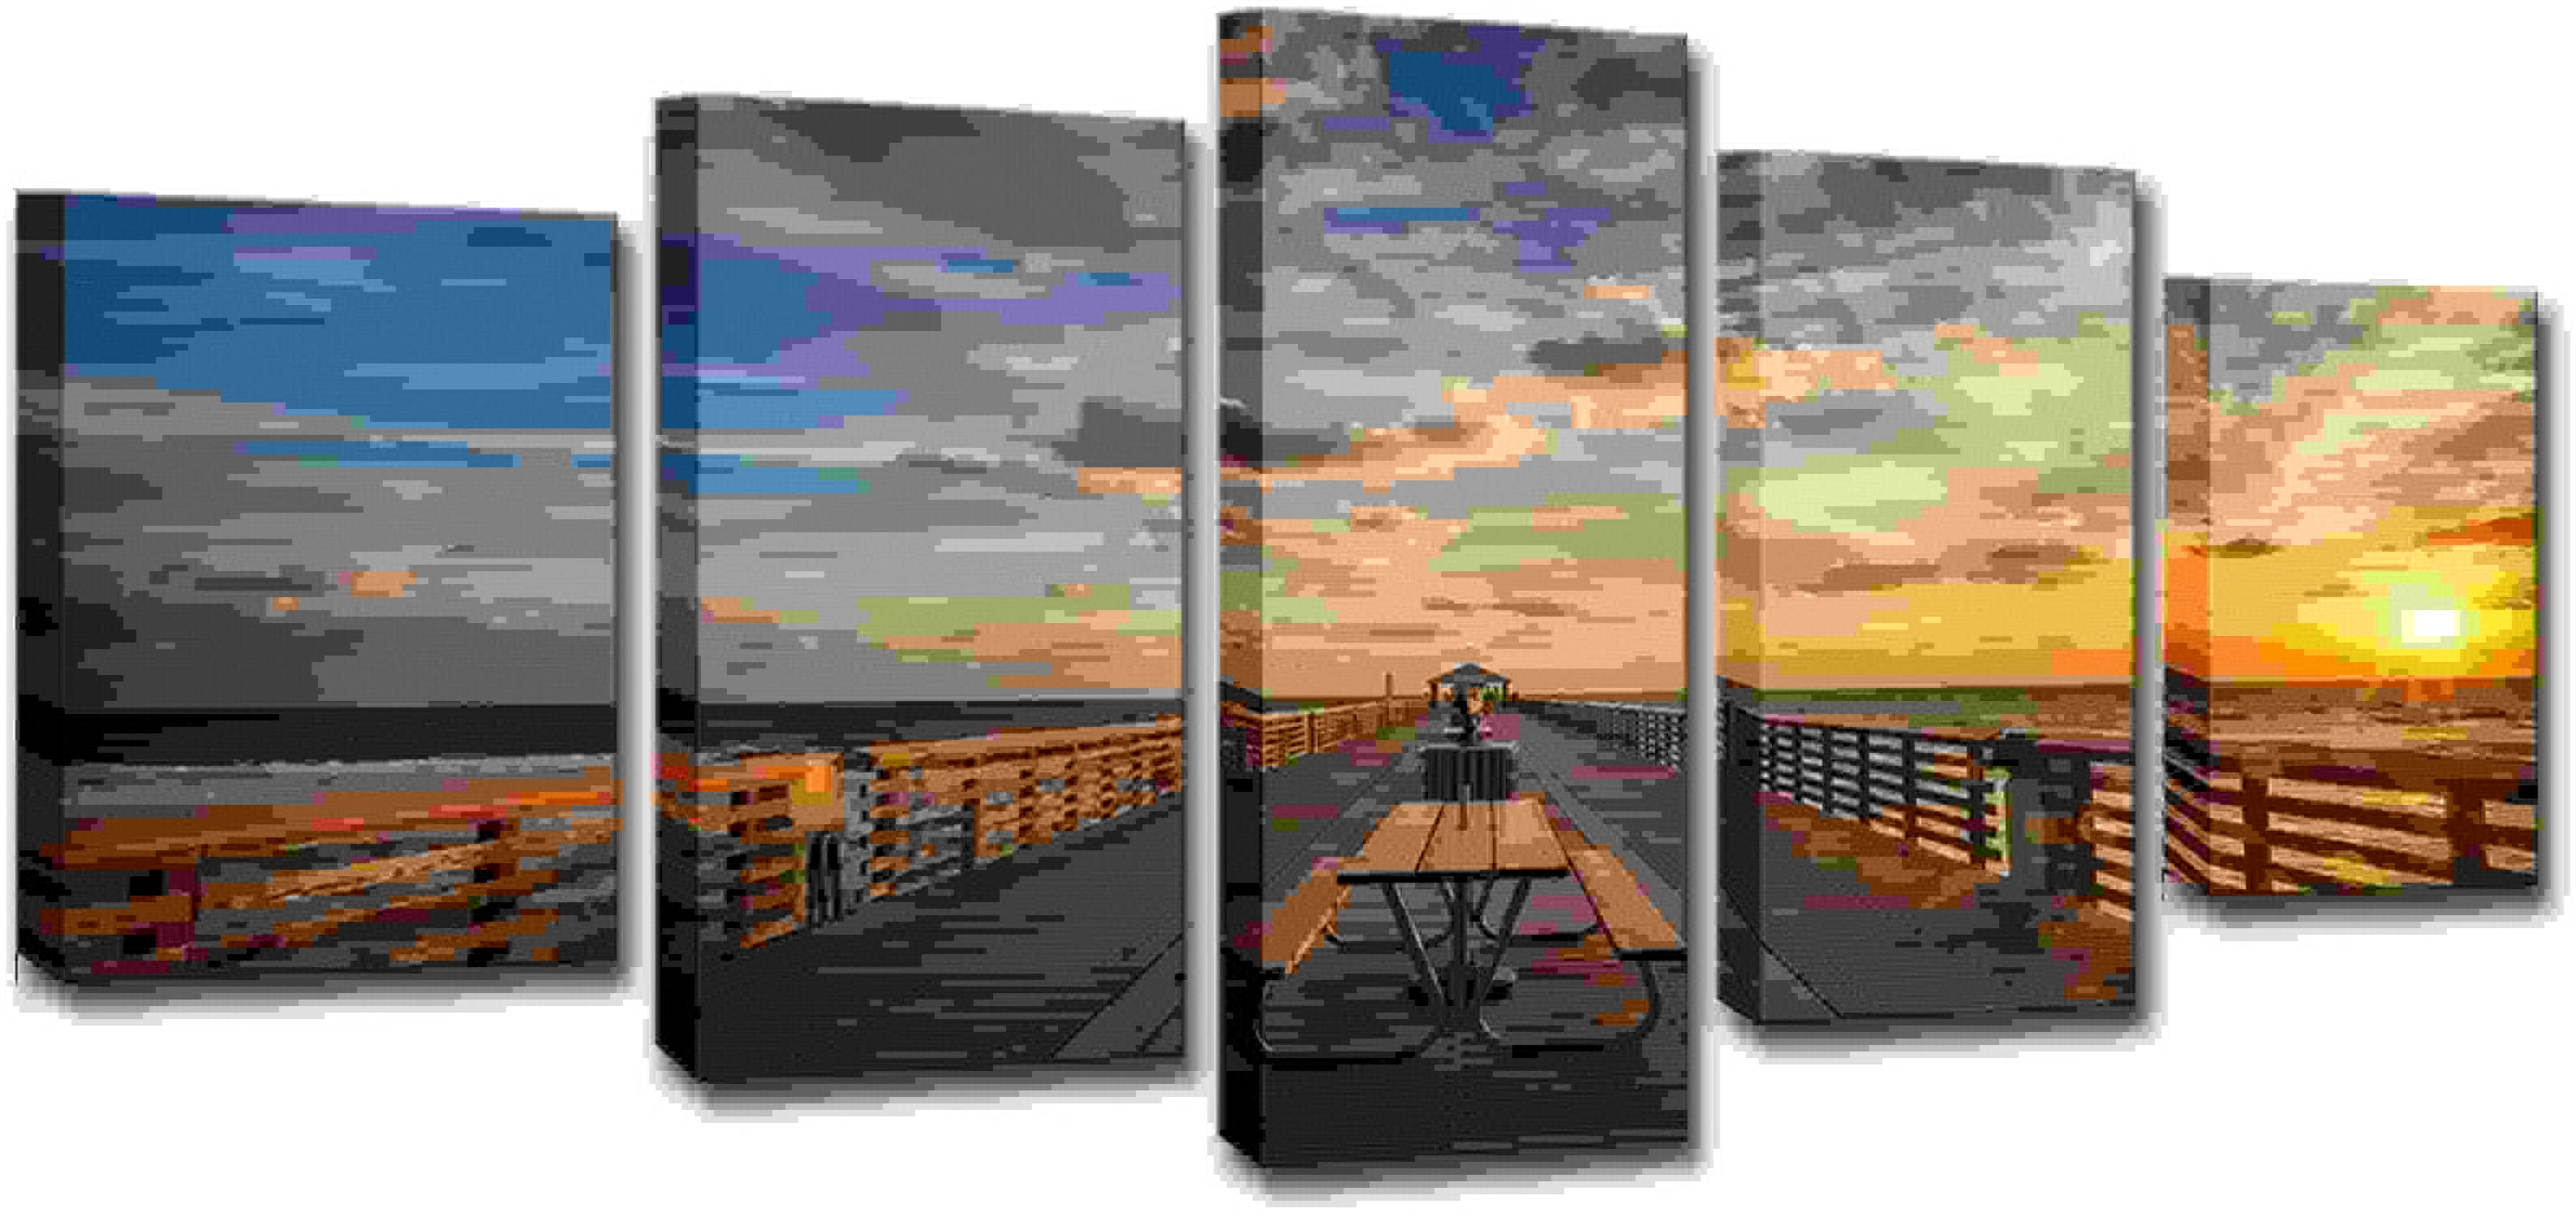 punto de venta en línea Canvas Canvas Canvas Wall Art, Moderno HD Impreso Canvas Pictures Room Home Decor, 5 Piezas Nubes Sunset Boardwalk Pintura Wall Art Bridge Poster,Frame,M  el mas de moda